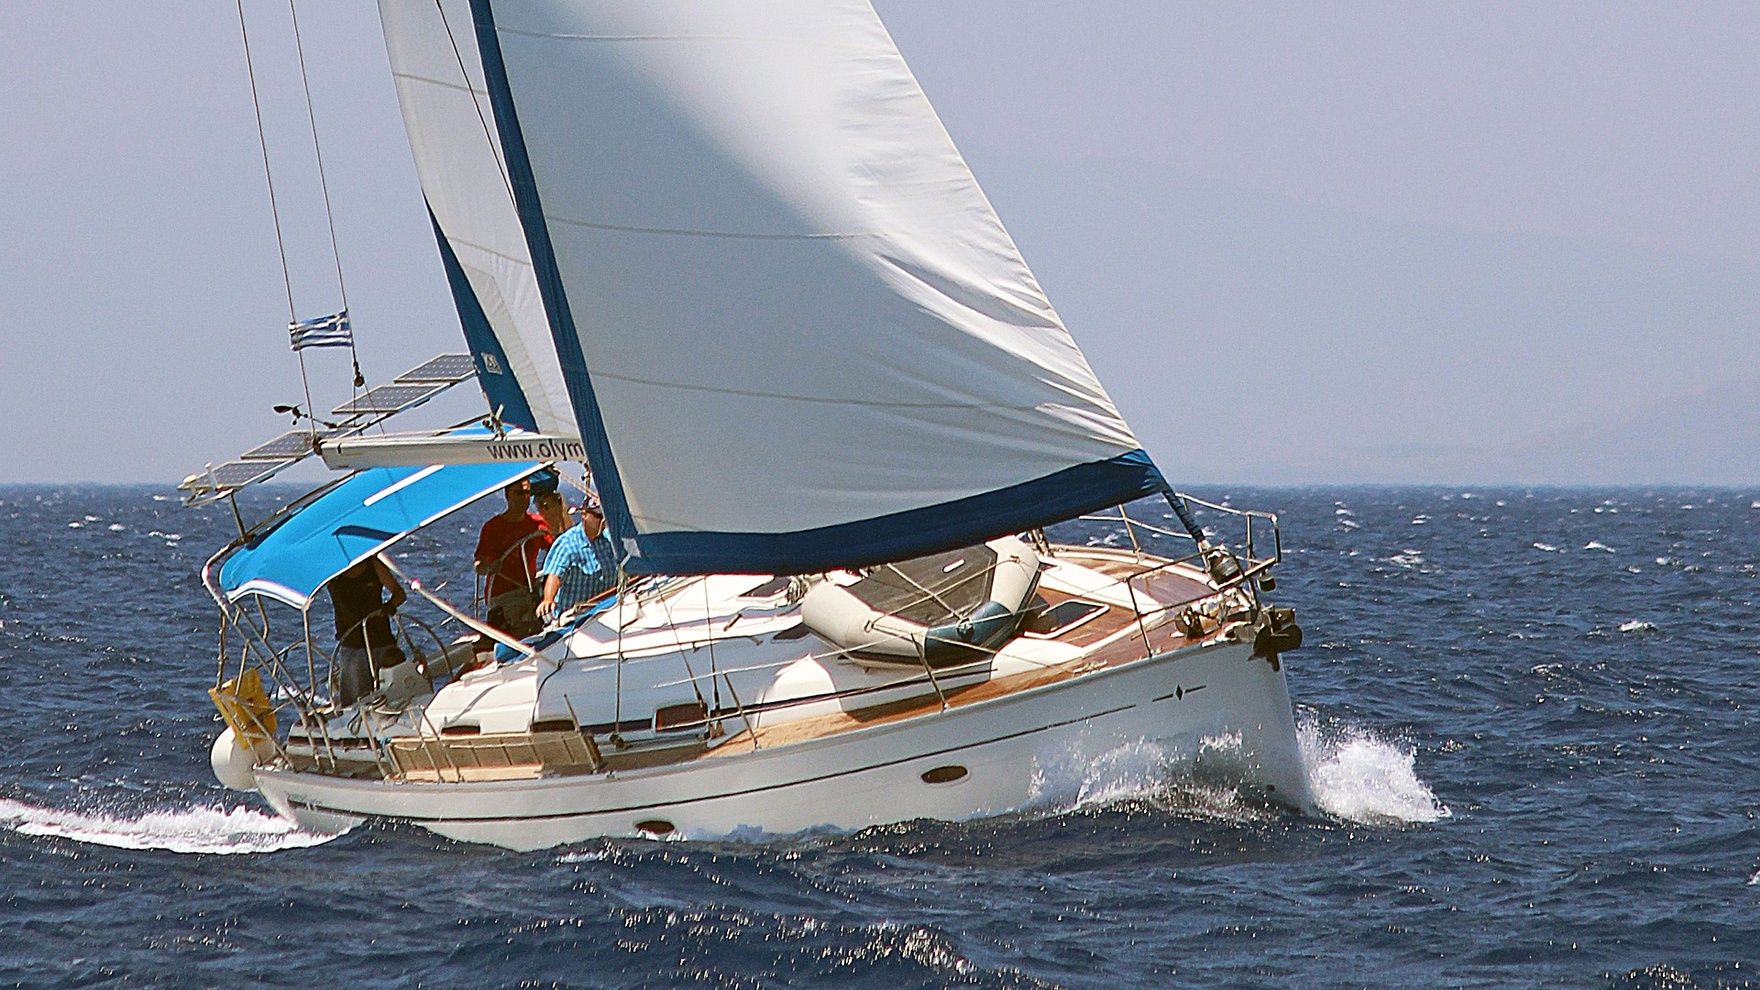 International Bareboat Skipper (IYT) Course